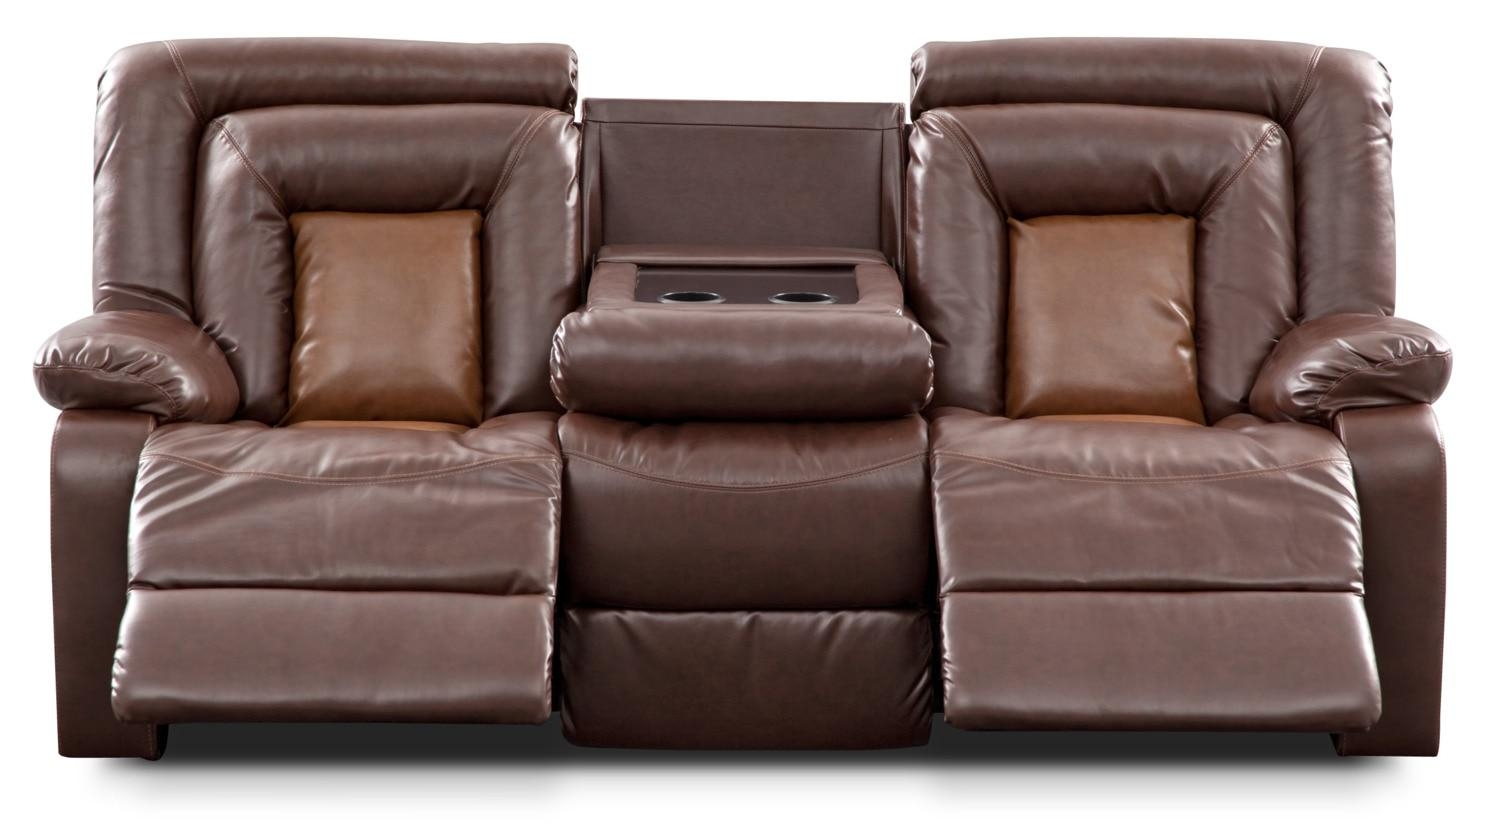 Sofas Center : Magnificent Recliningfa With Console Images Concept In Sofas With Console (Image 15 of 20)